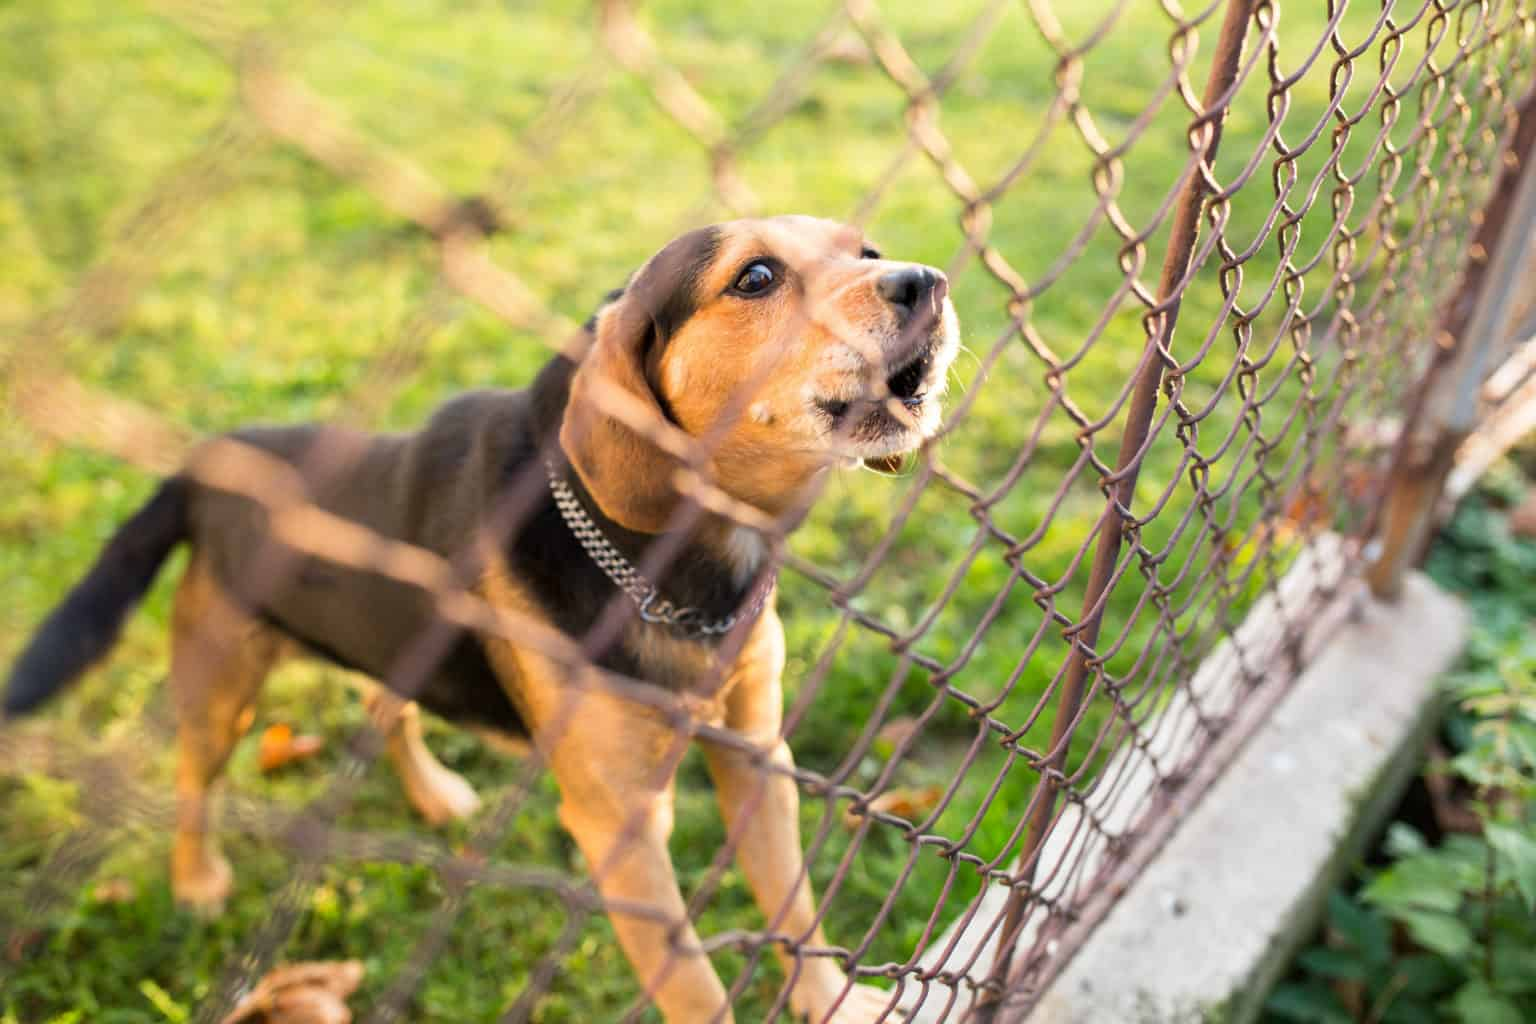 Young dog barks through the garden fence